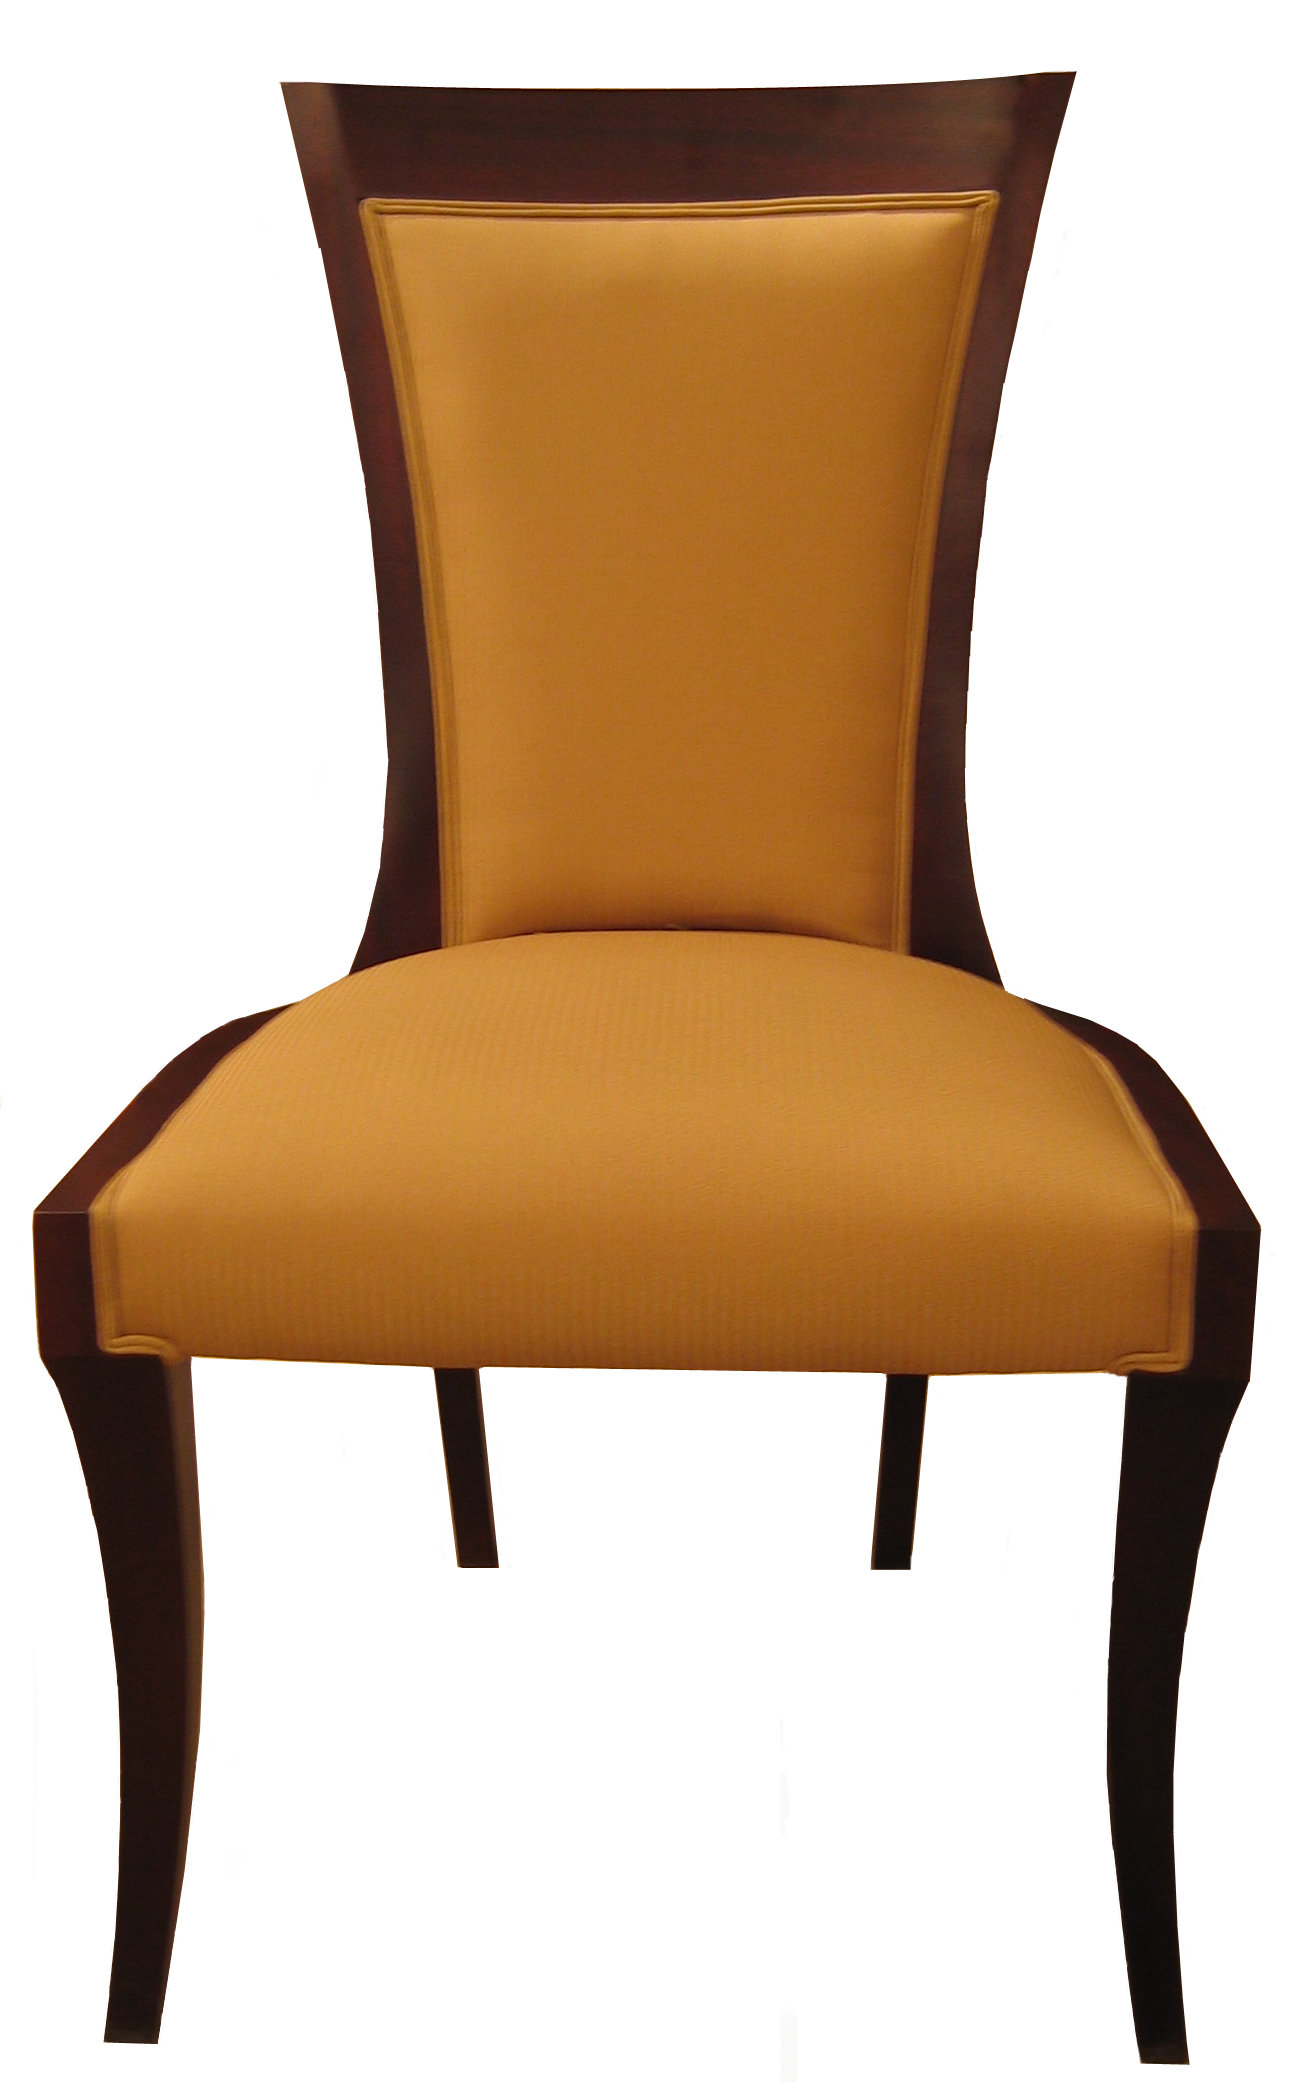 Dining chairs design chair pads cushions for Dining room chairs